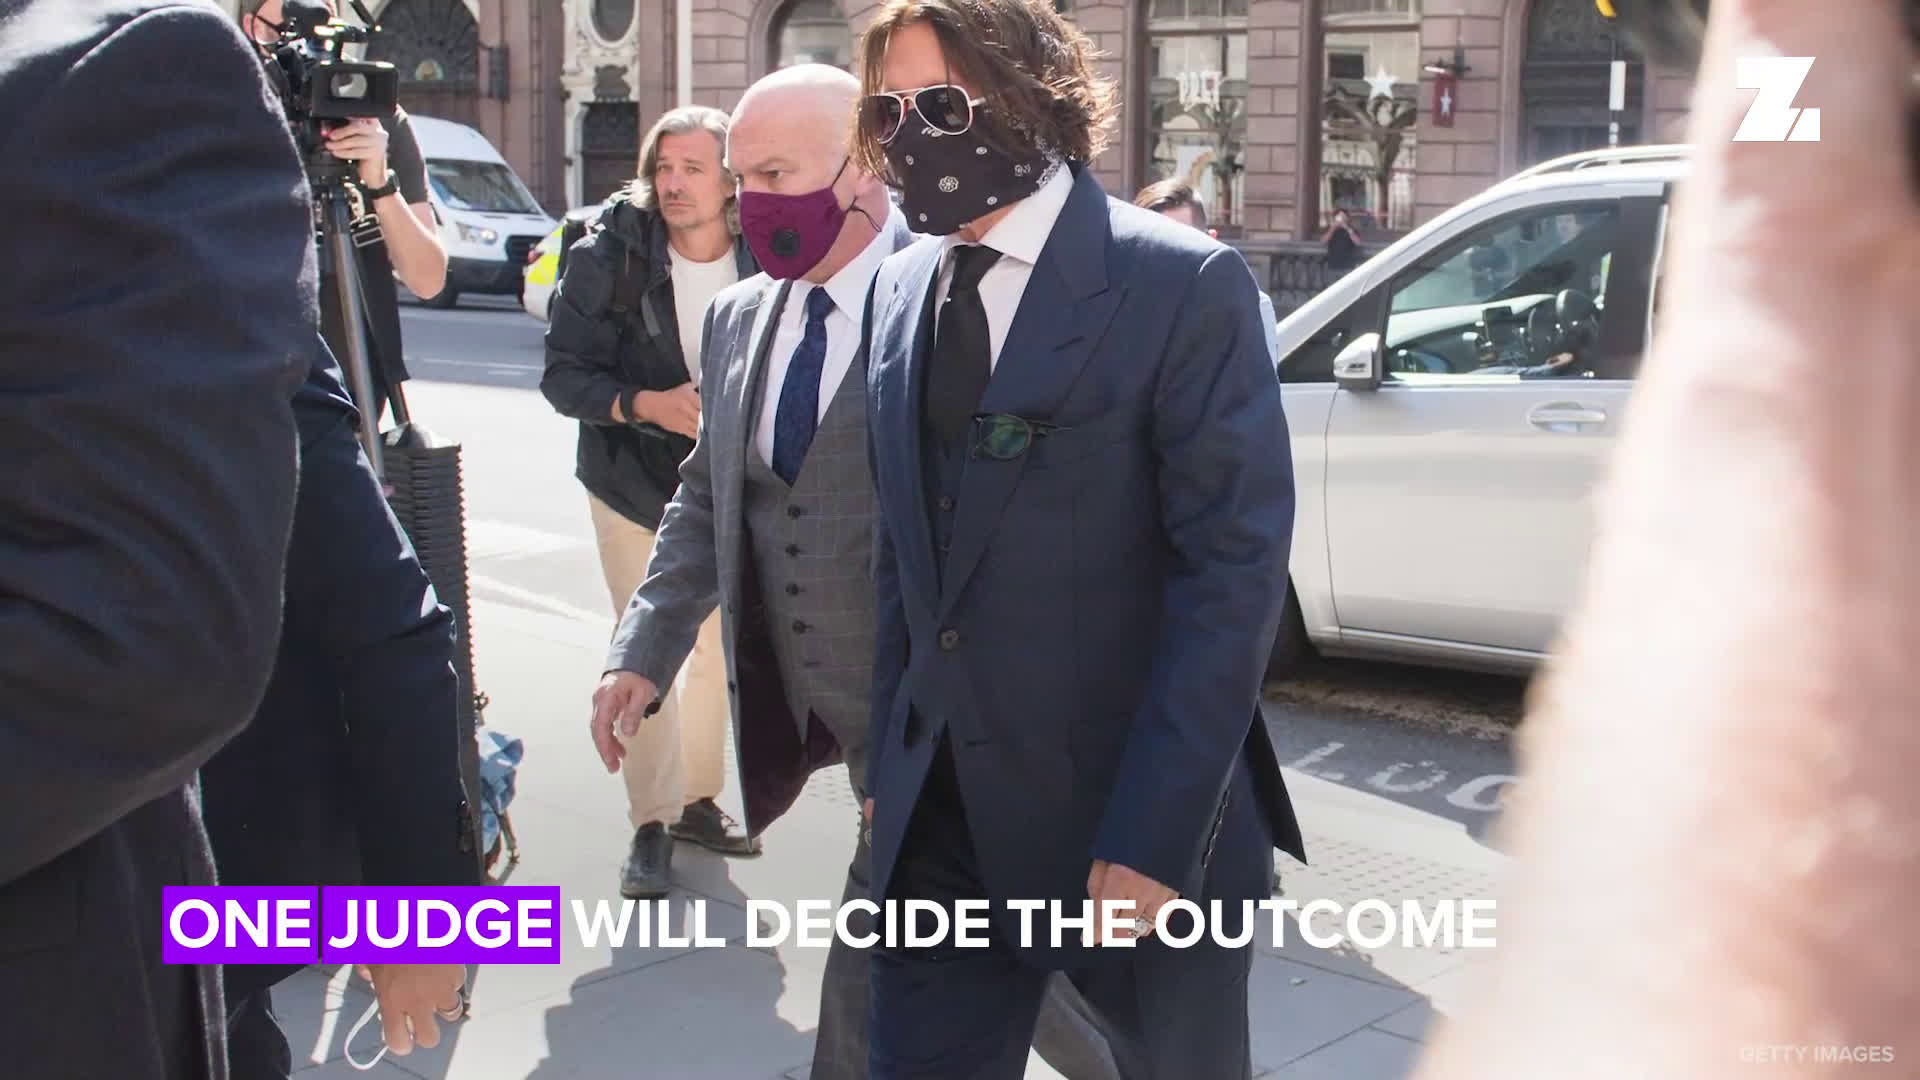 Johnny Depp & Amber Heard come face-to-face in London High Court